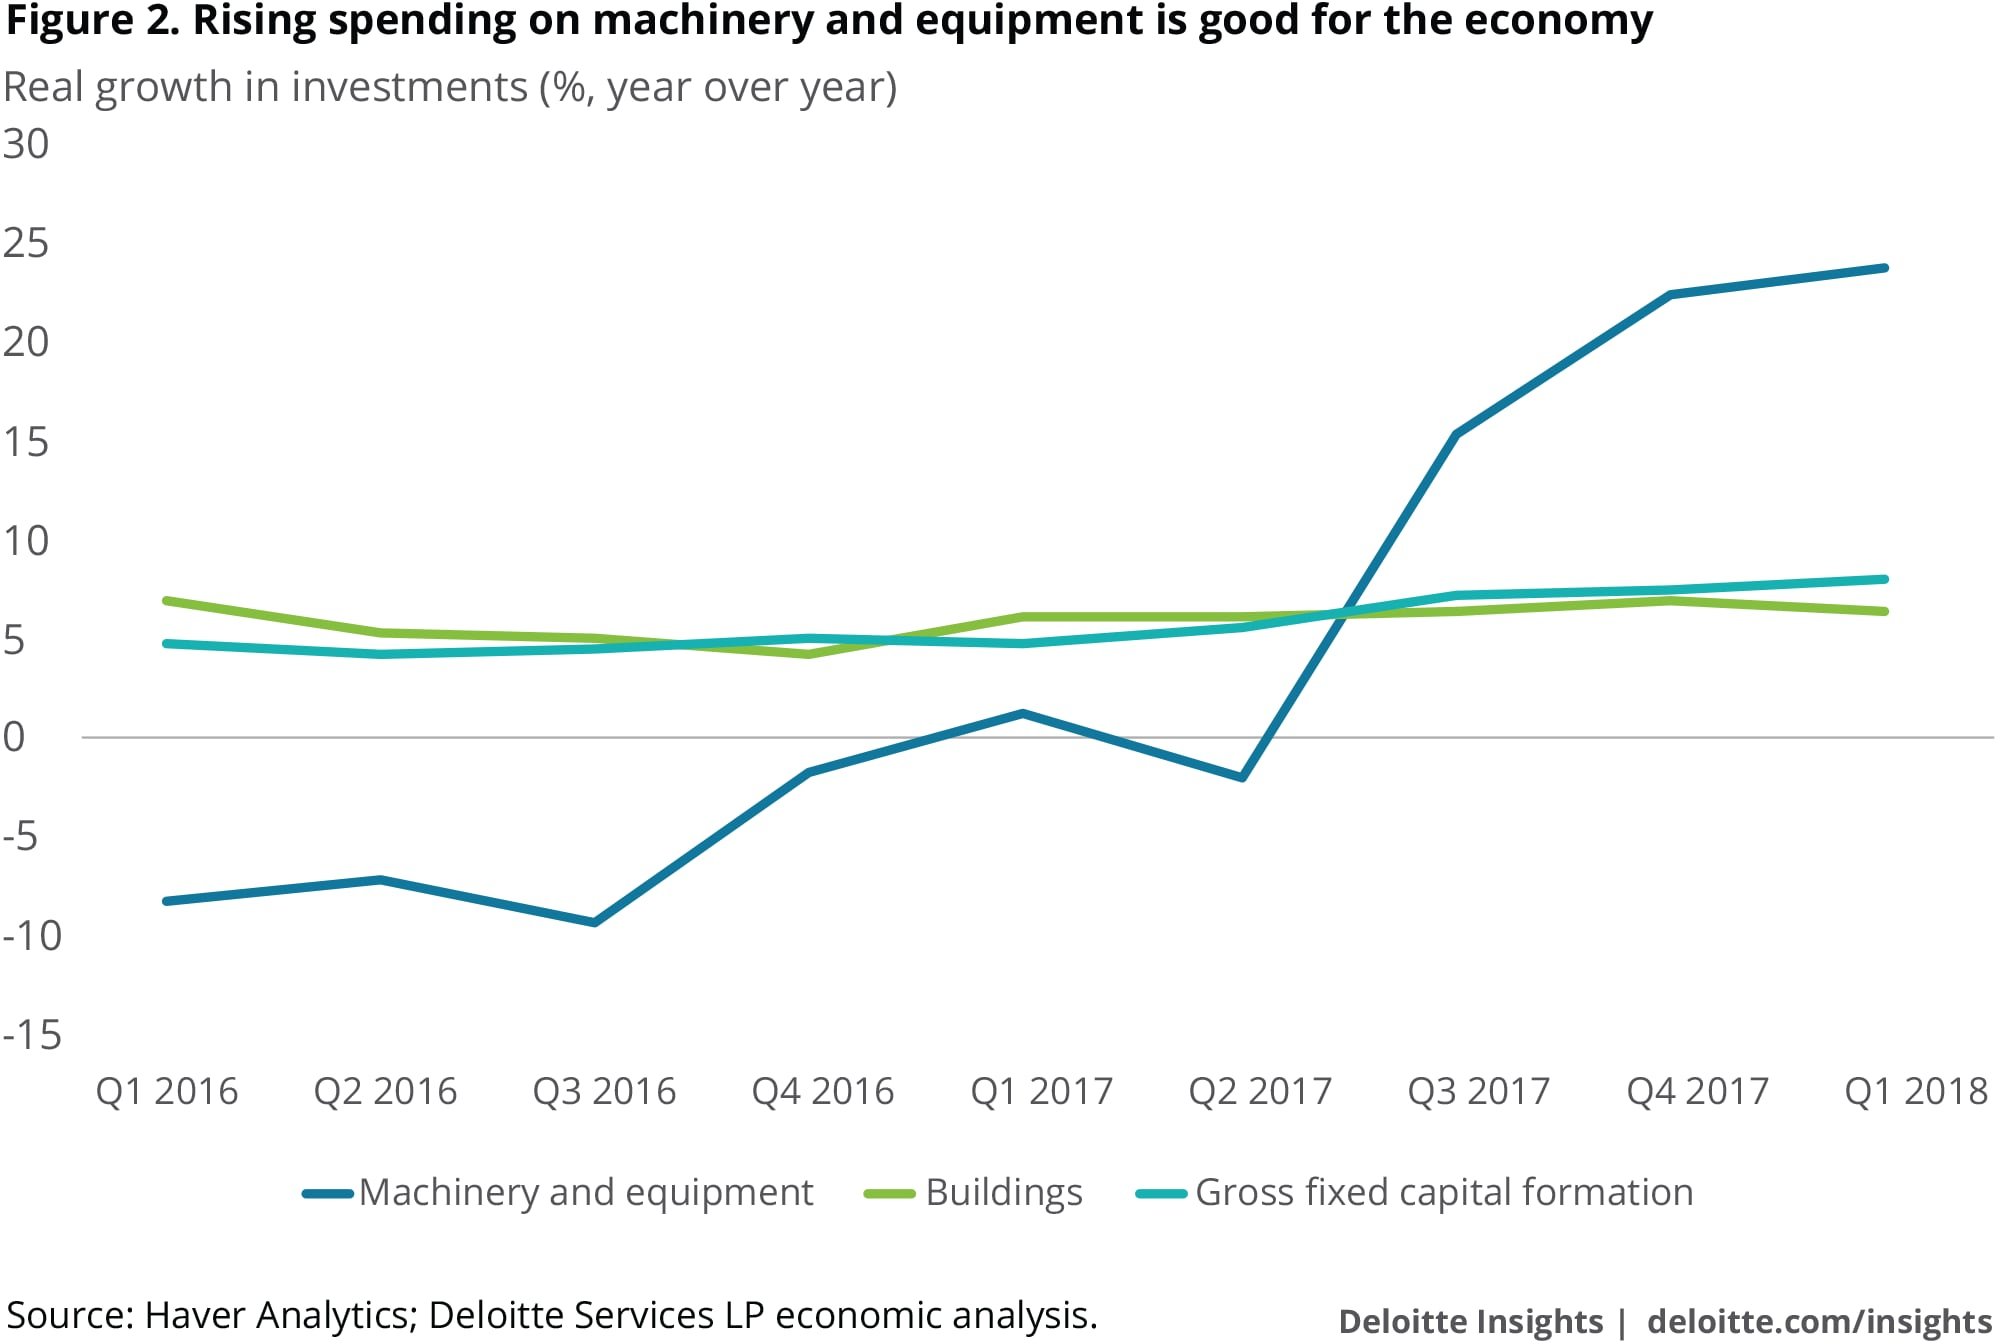 Rising spending on machinery and equipment is good for the economy